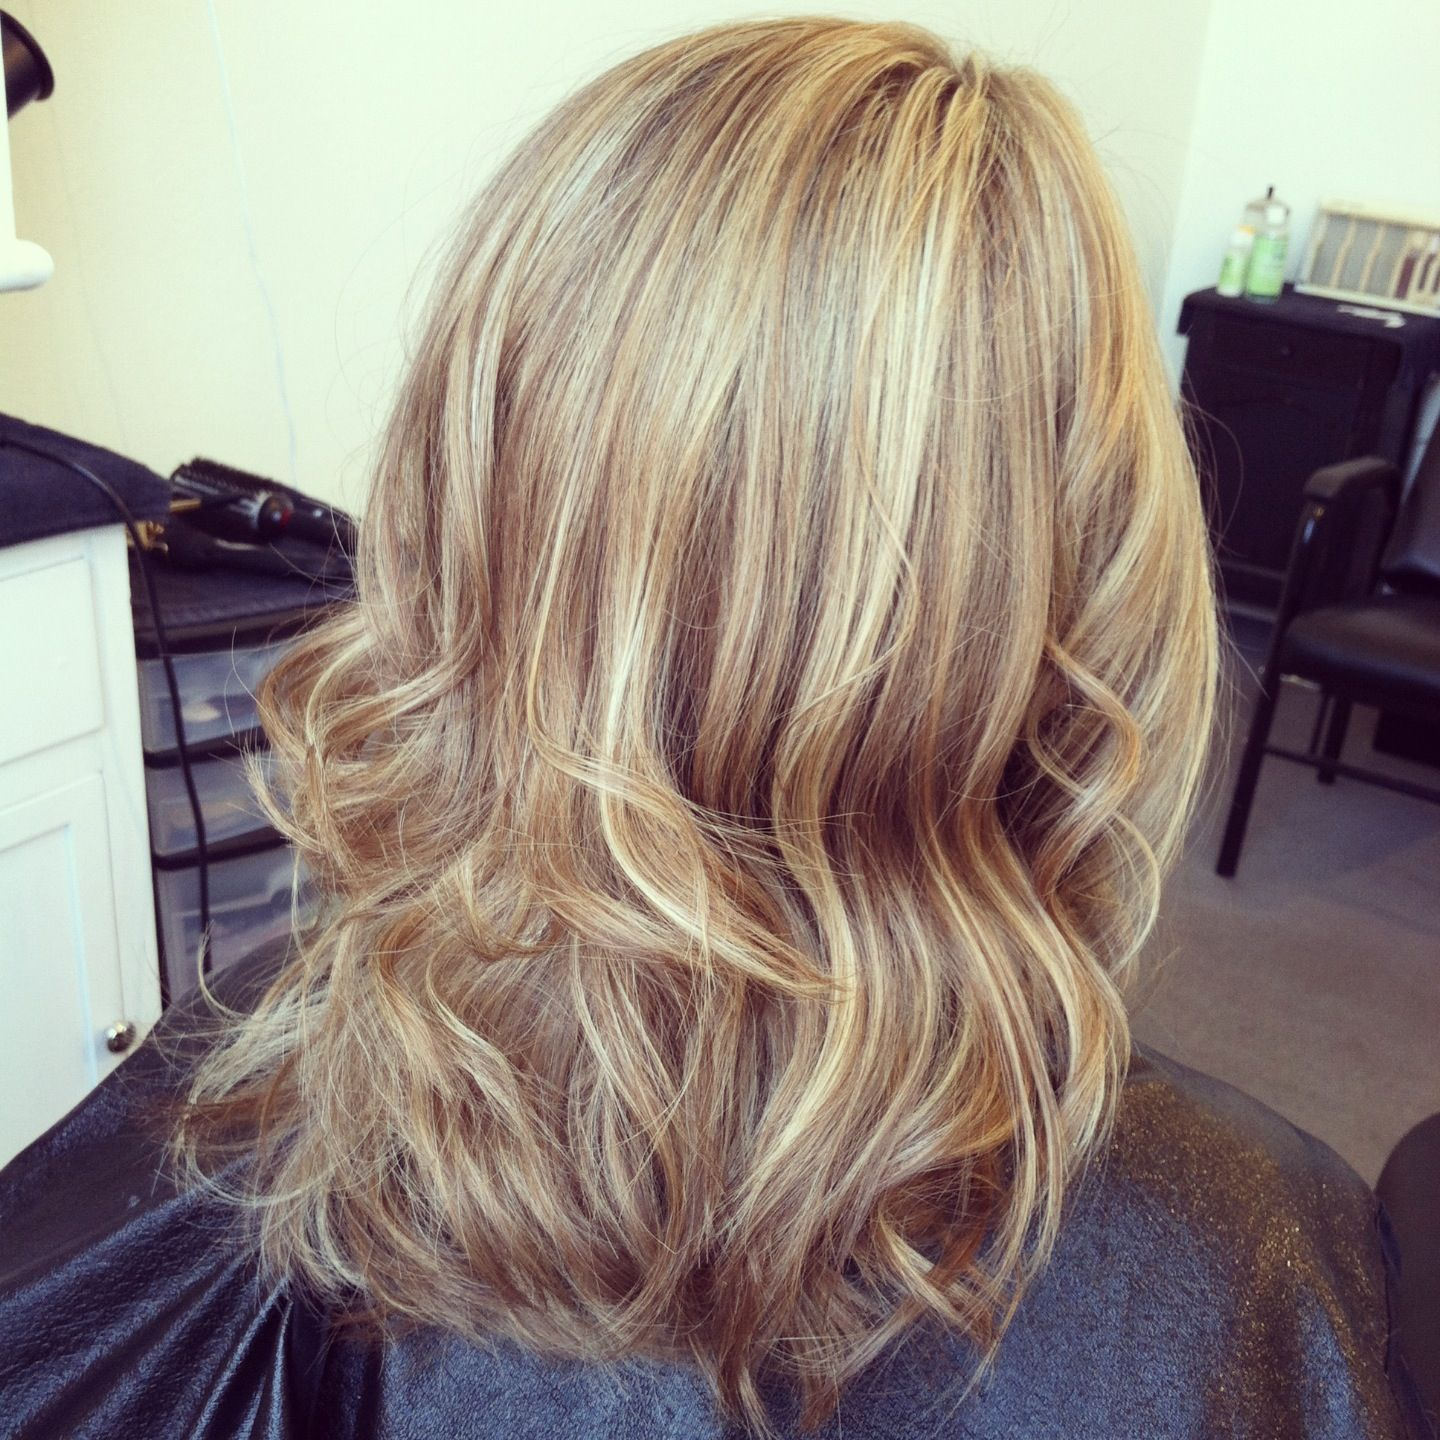 Sun kissed blonde | HAIR: colors, cut and styles by Sara Pecora | Pin